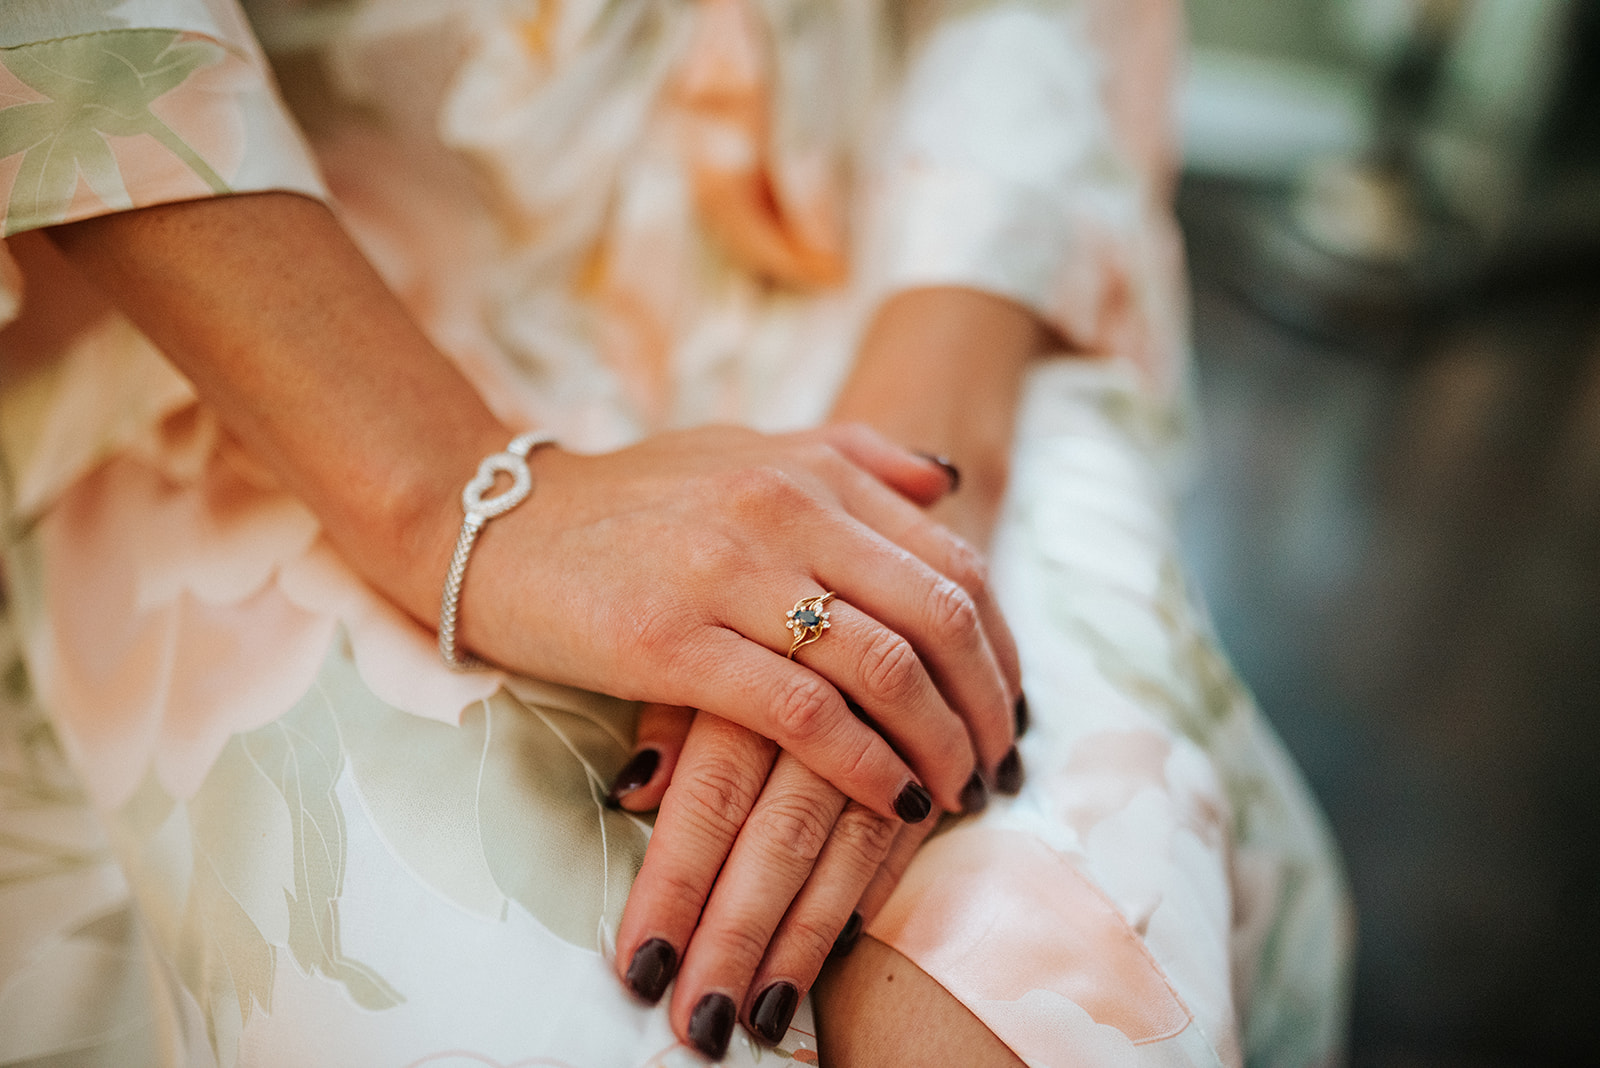 overthevineswisconsinwedding_0242.jpg